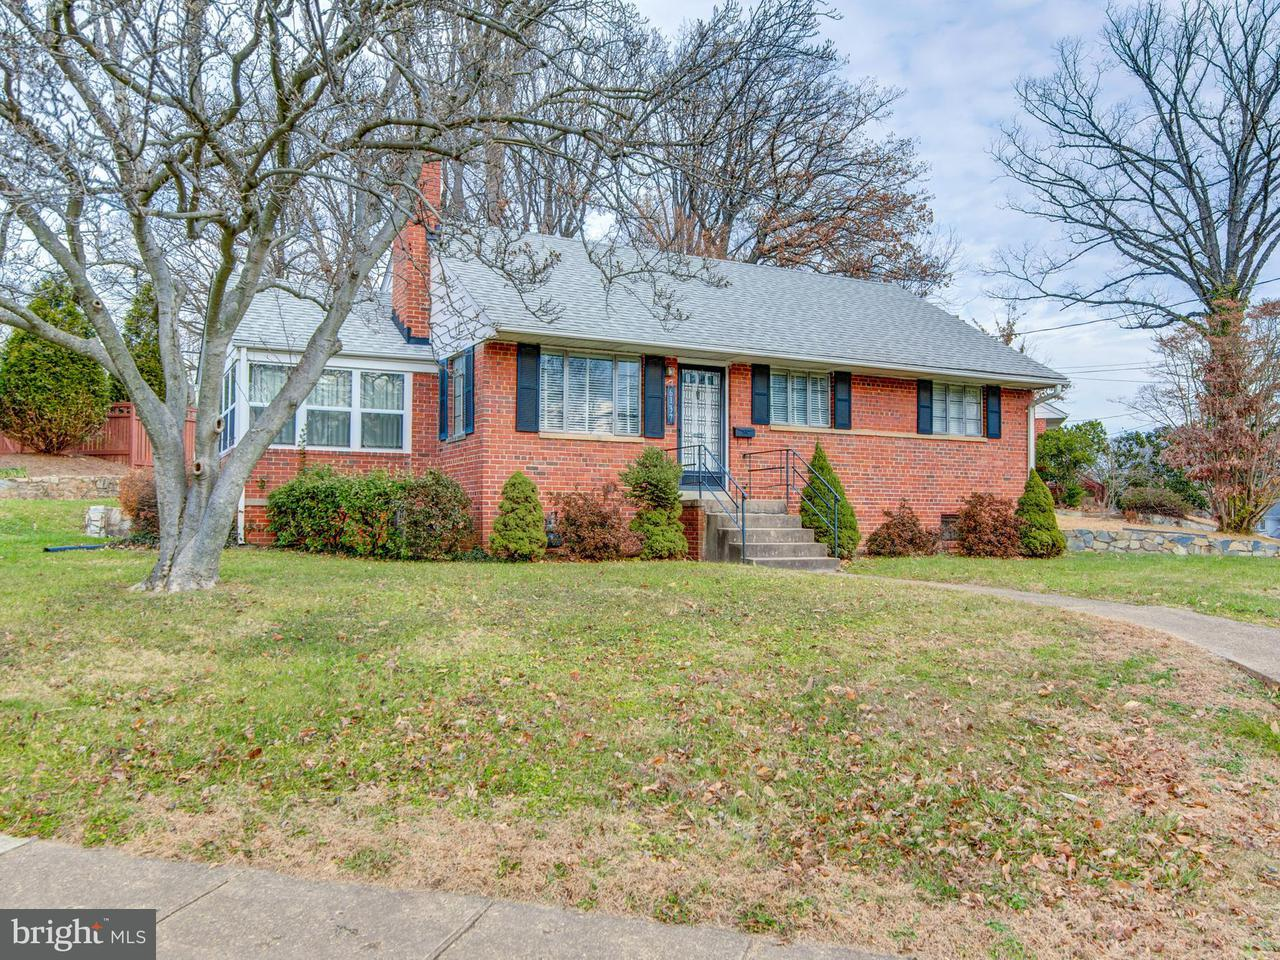 Single Family Home for Sale at 6137 Williamsburg Blvd 6137 Williamsburg Blvd Arlington, Virginia 22207 United States